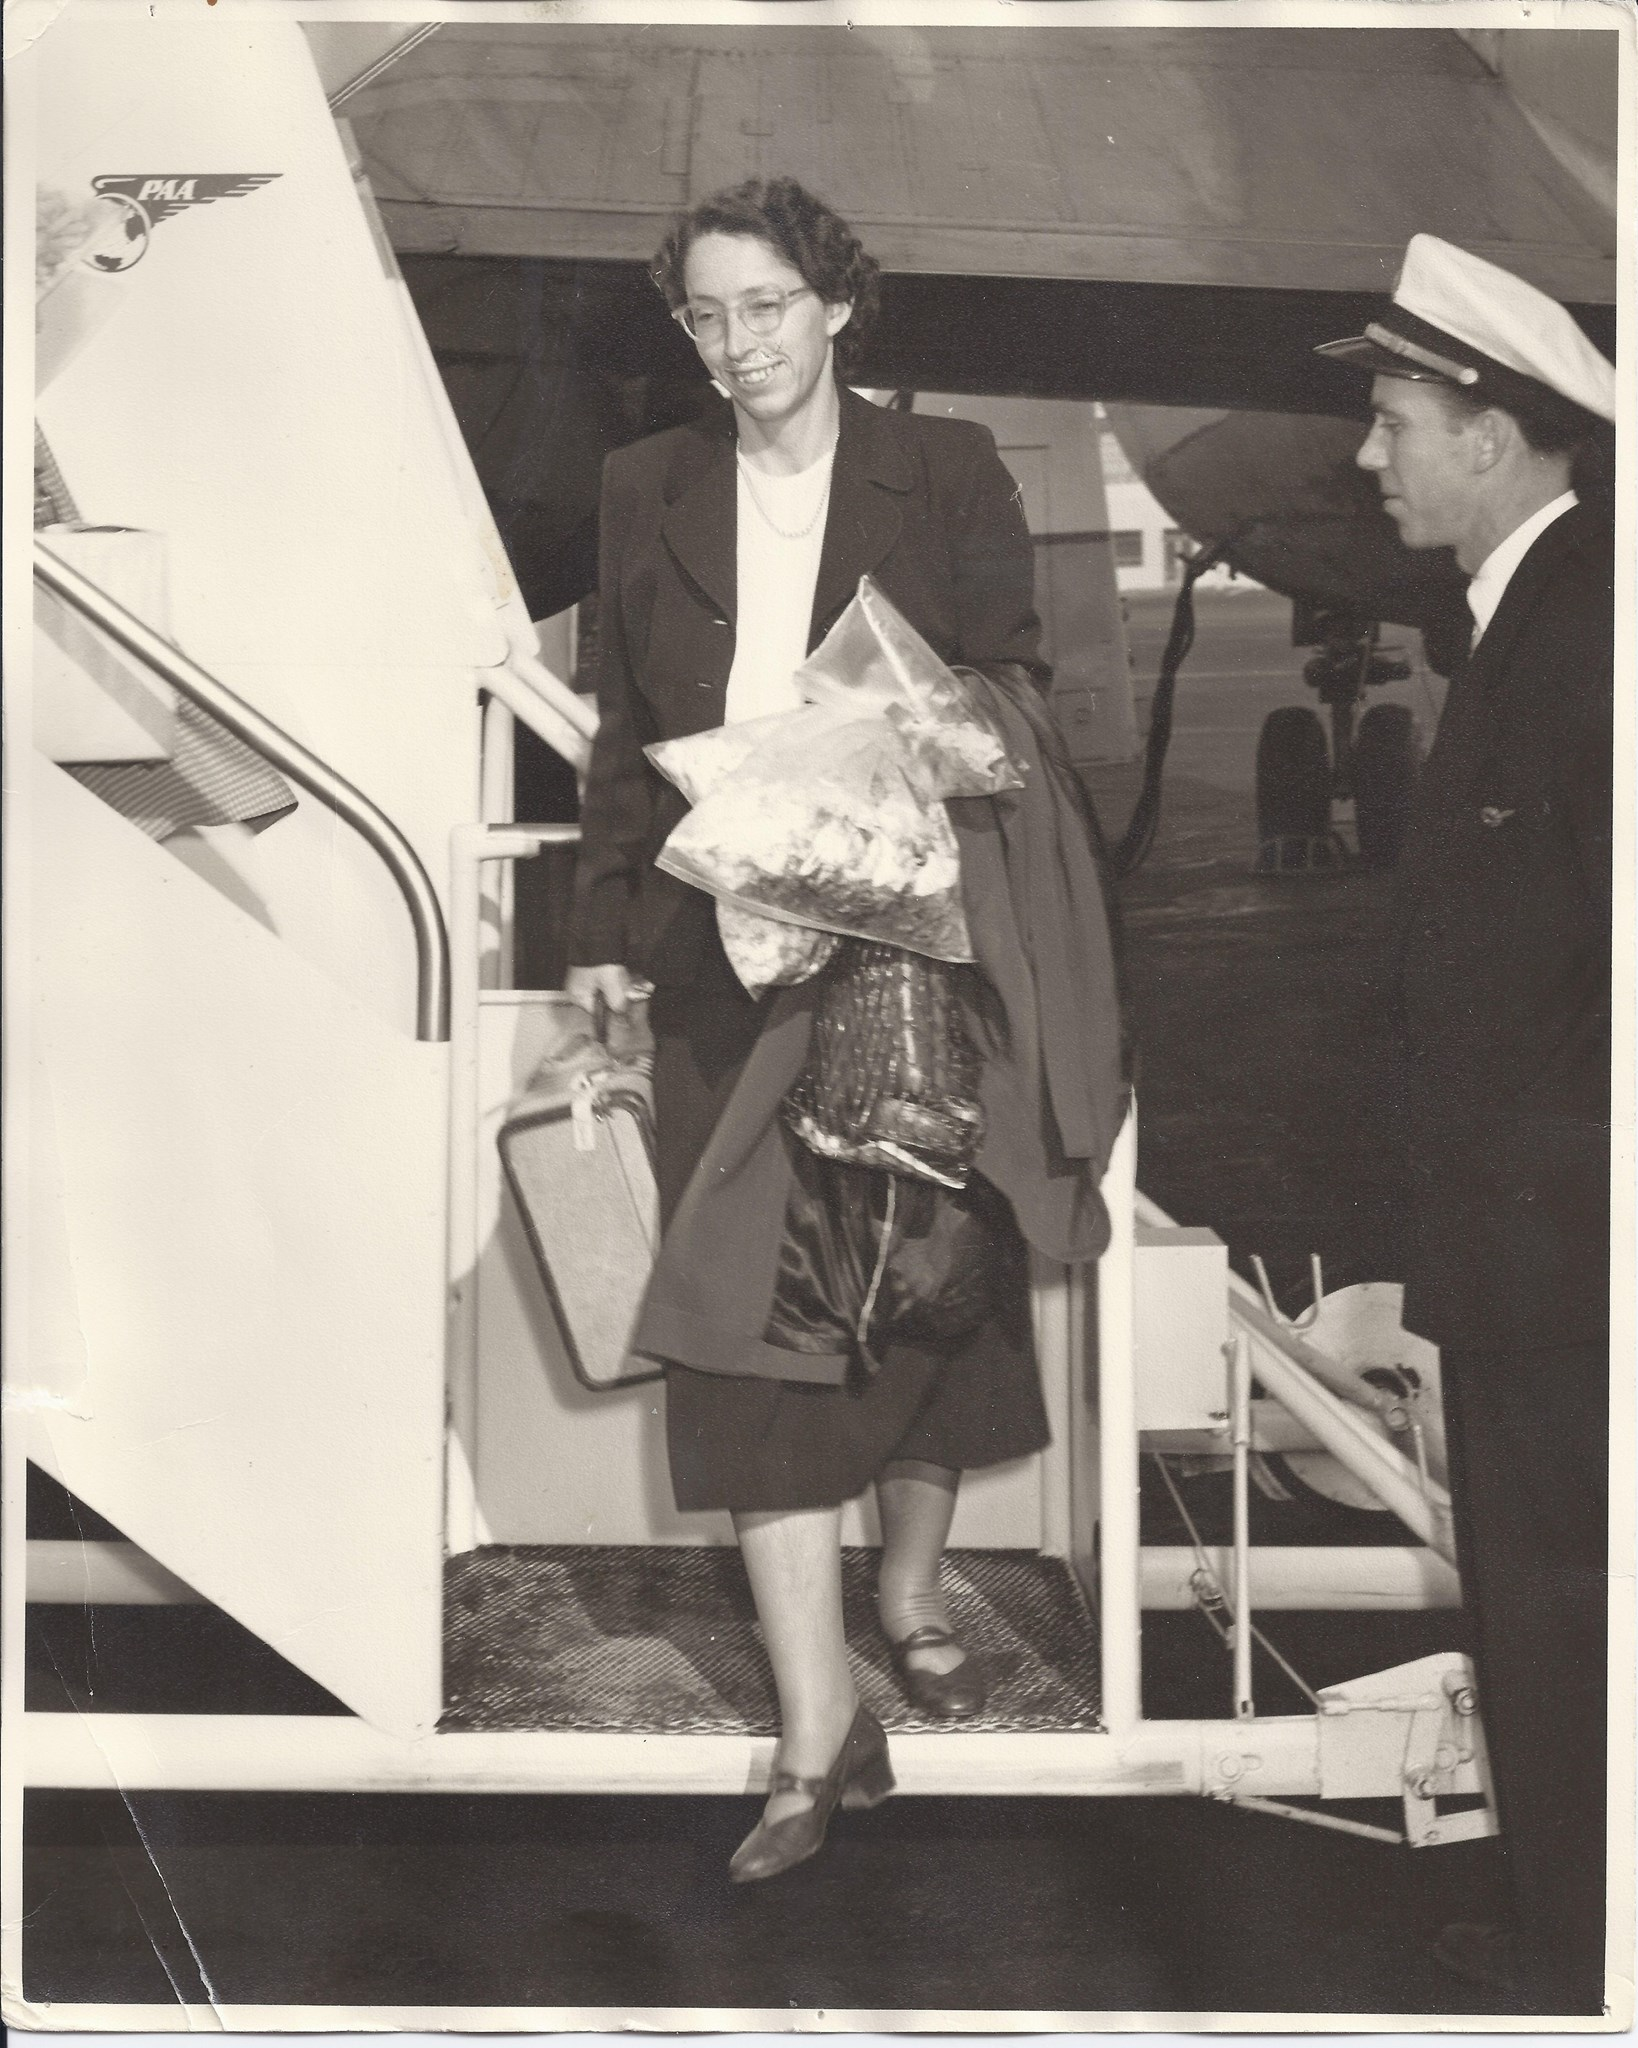 1956 Arriving back in America first time